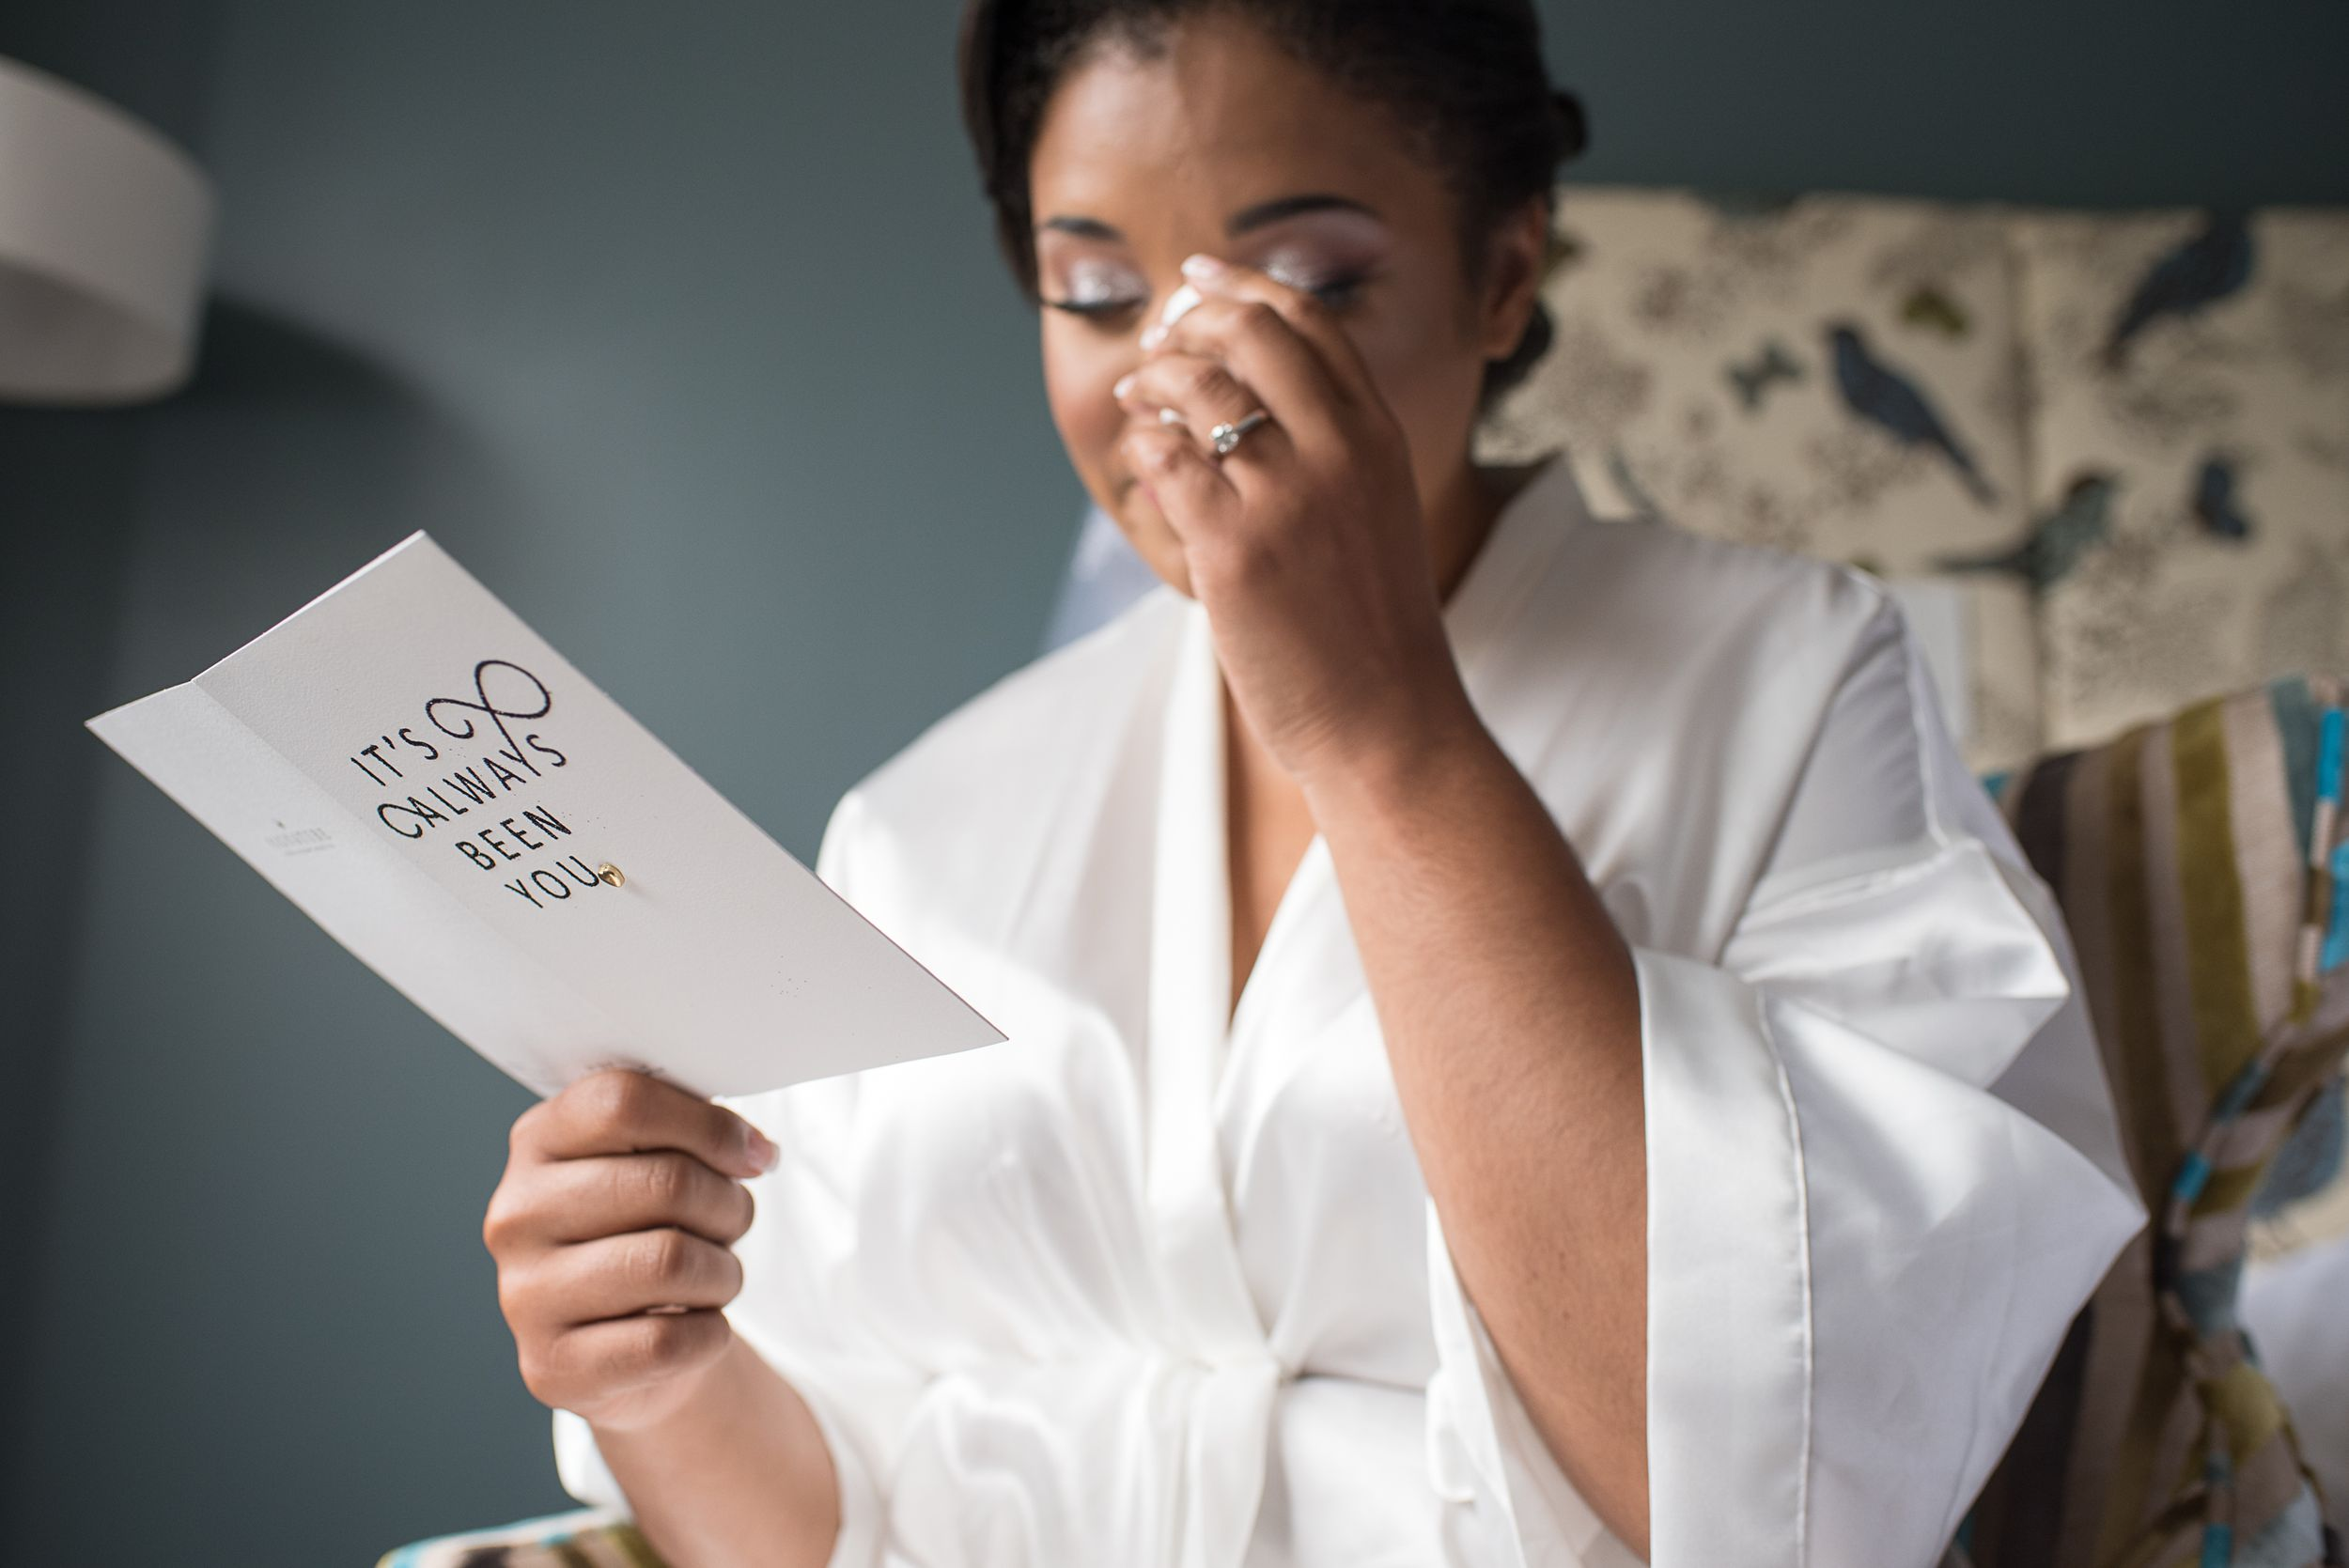 emotional moment of bride reading wedding day card from her fiance | Princeton Wedding Photographer